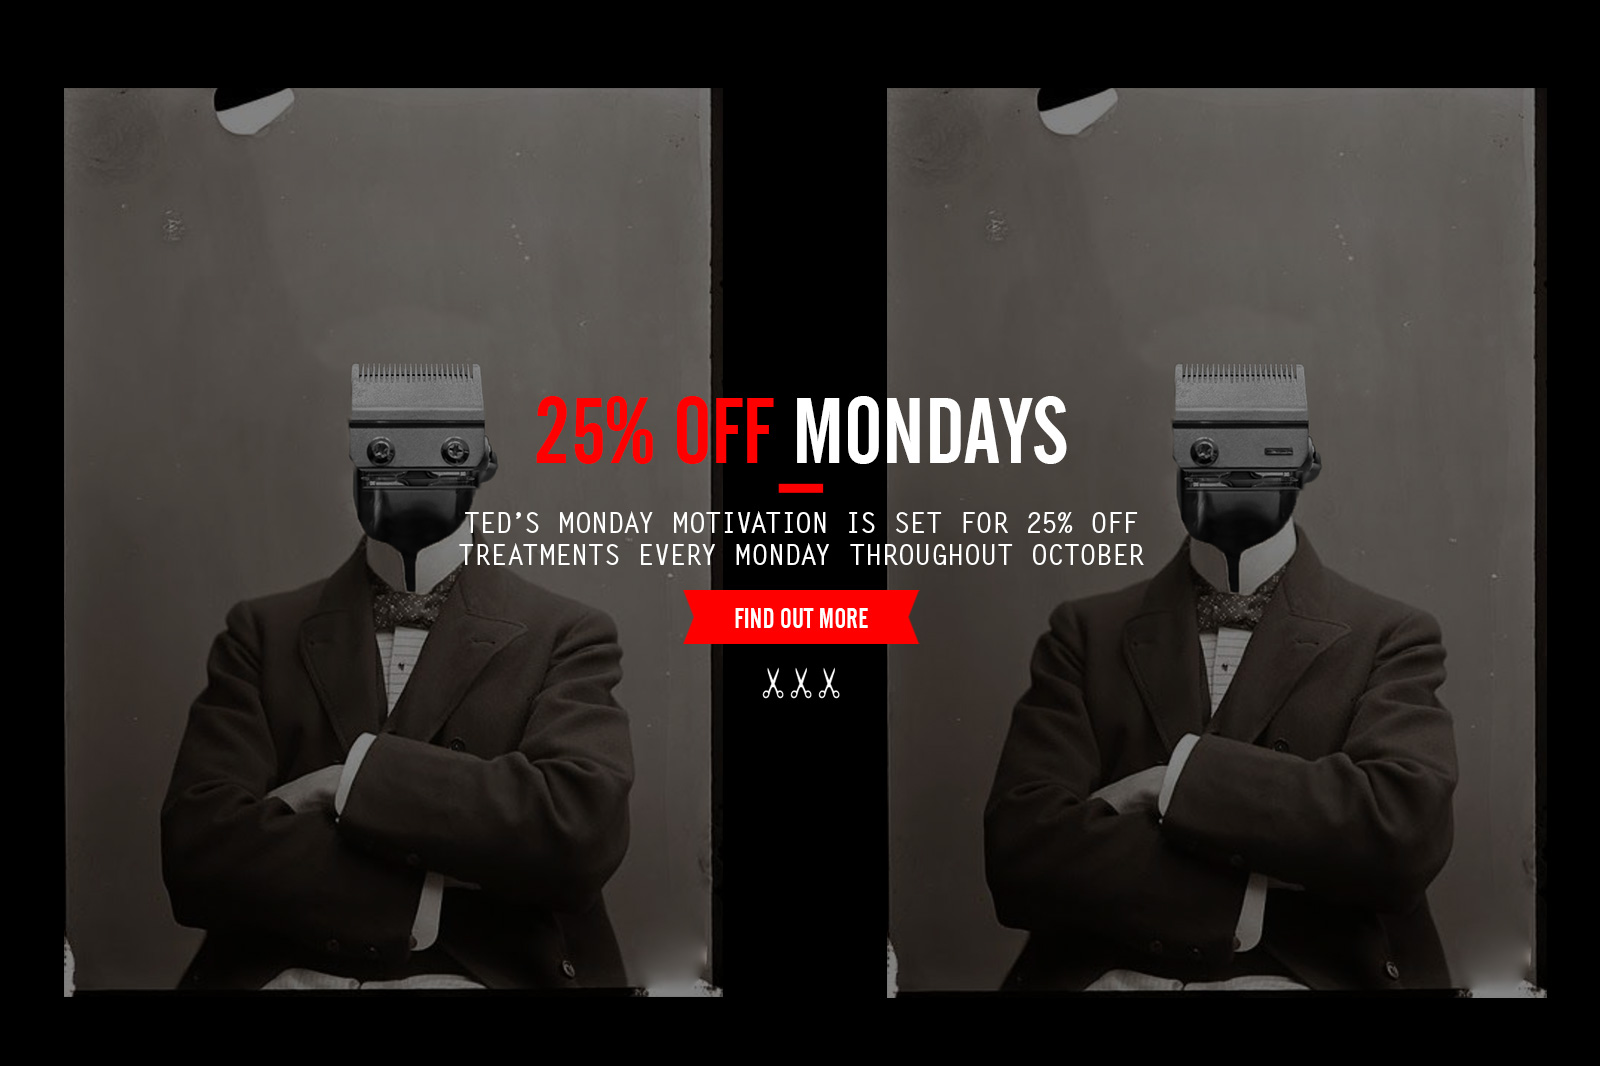 Best barbers in london Monday motivation